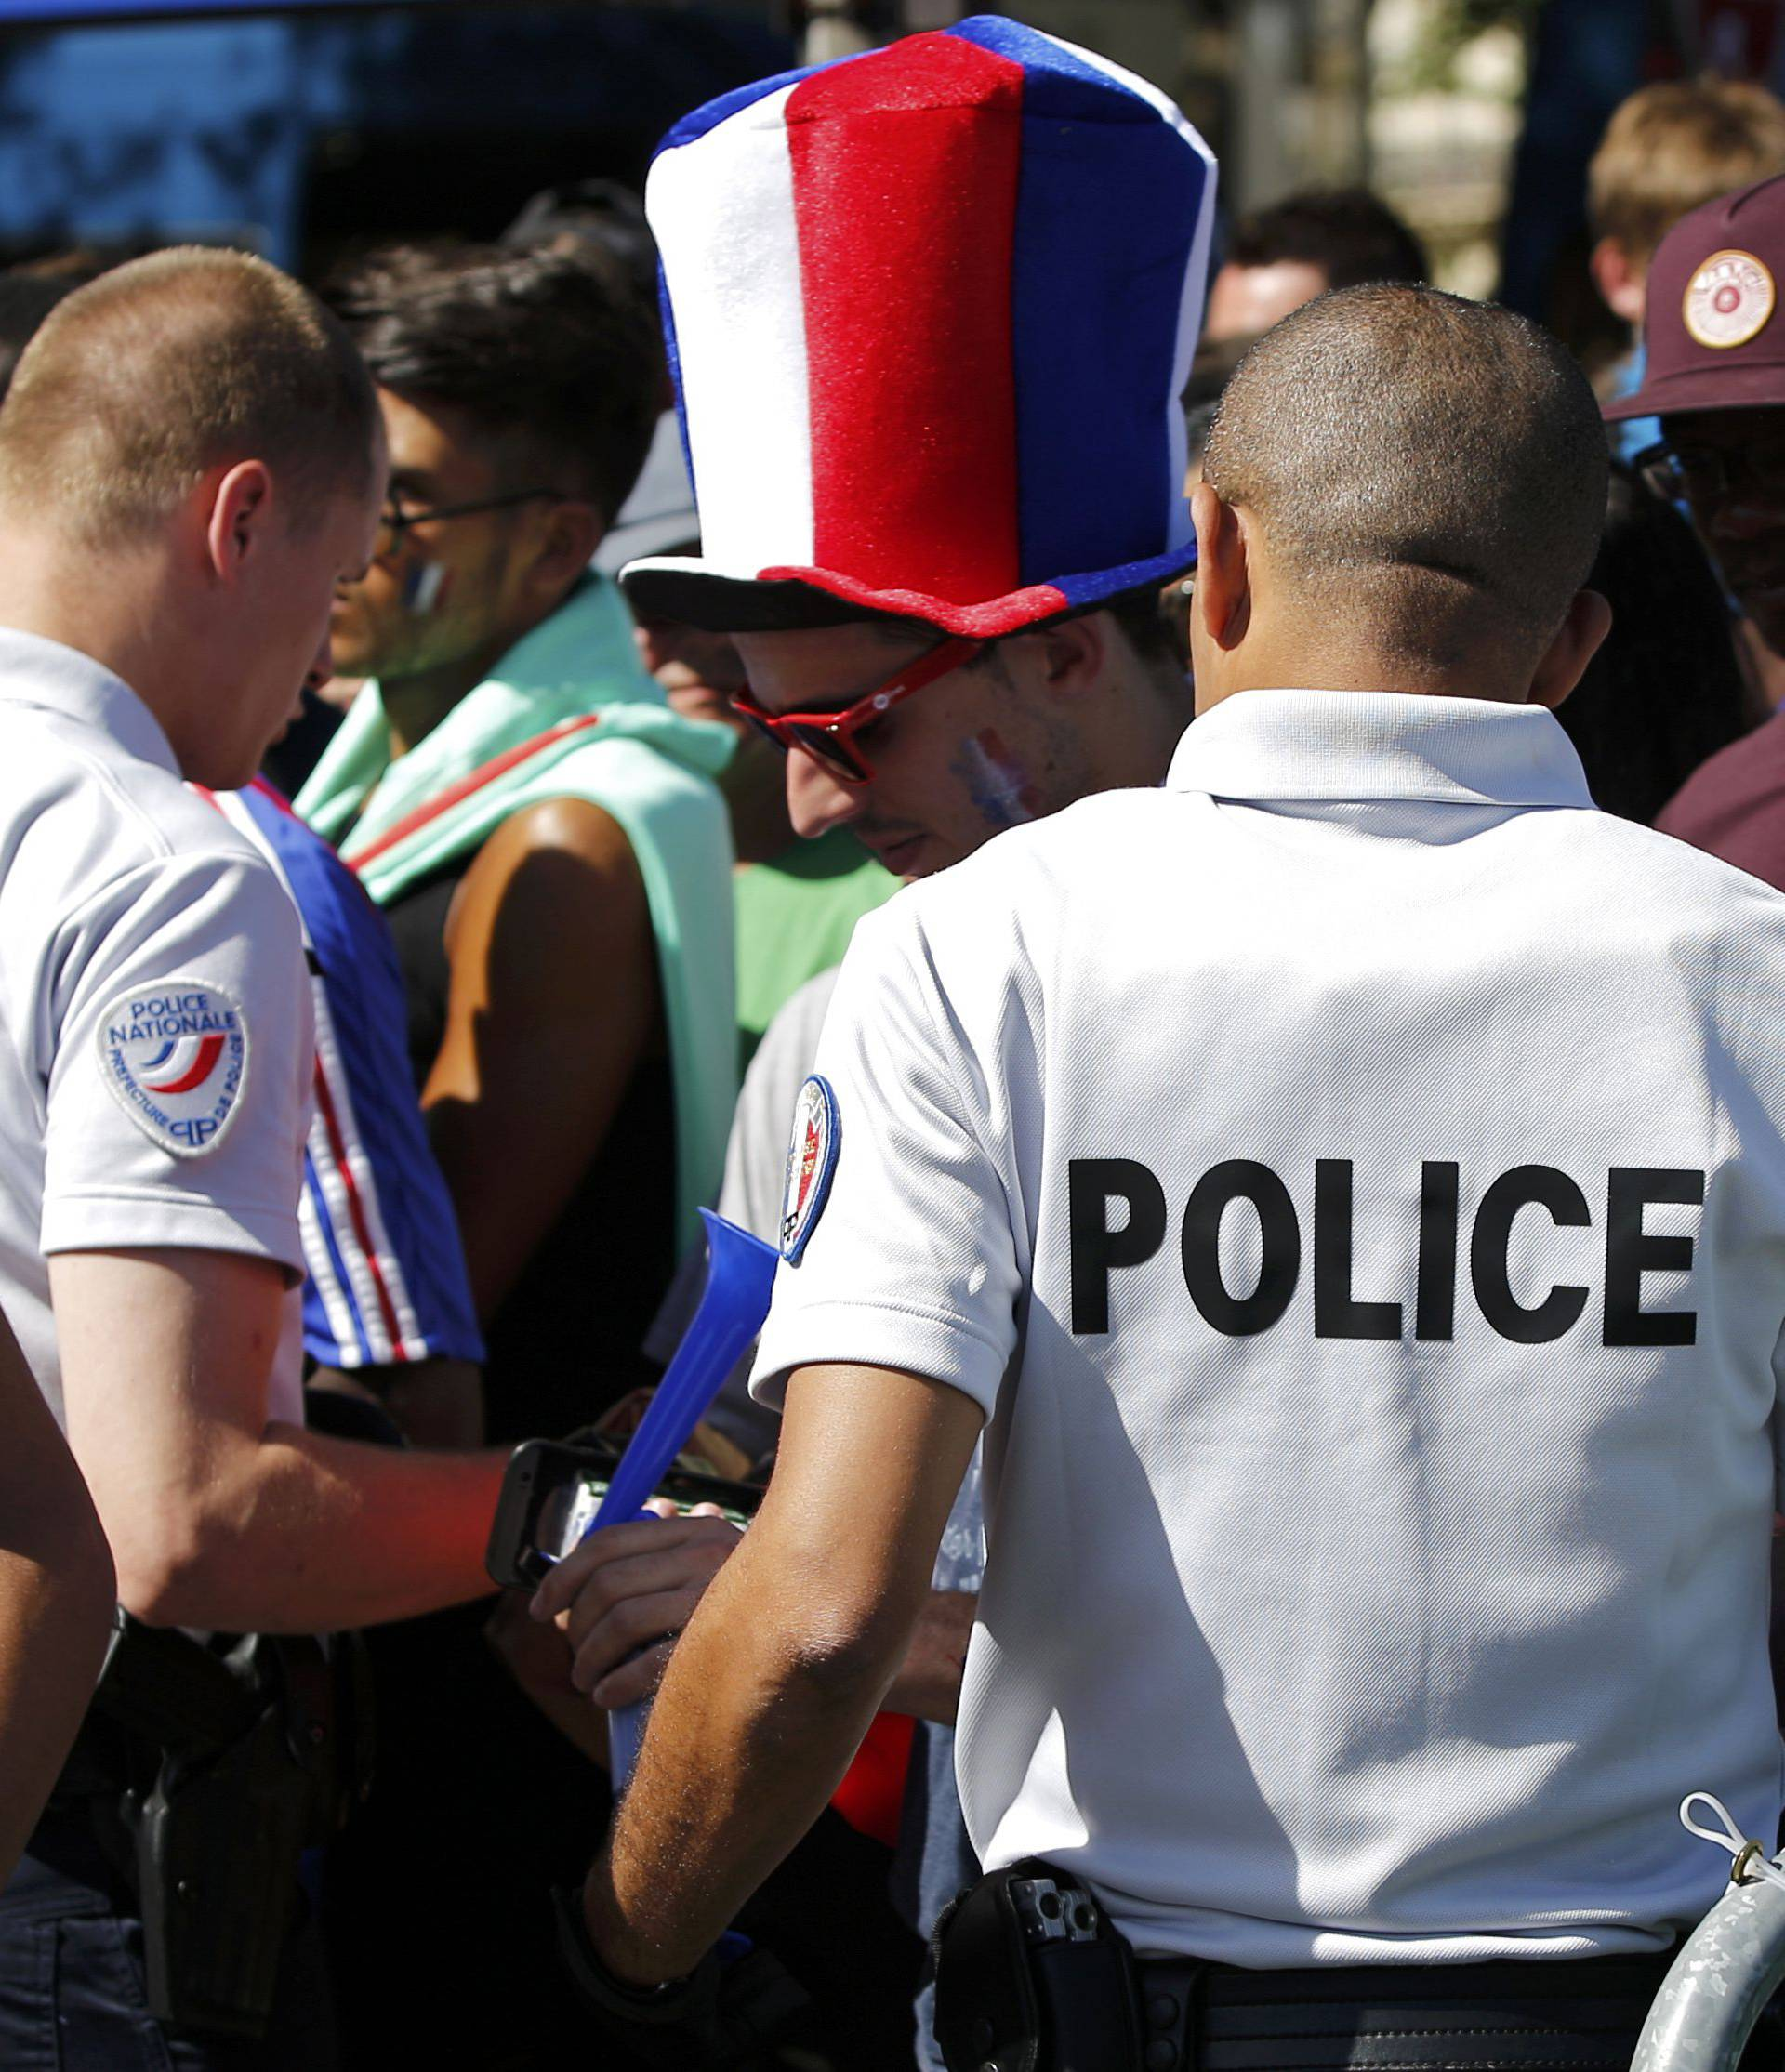 Security check near the Paris fan zone during a EURO 2016 final soccer match